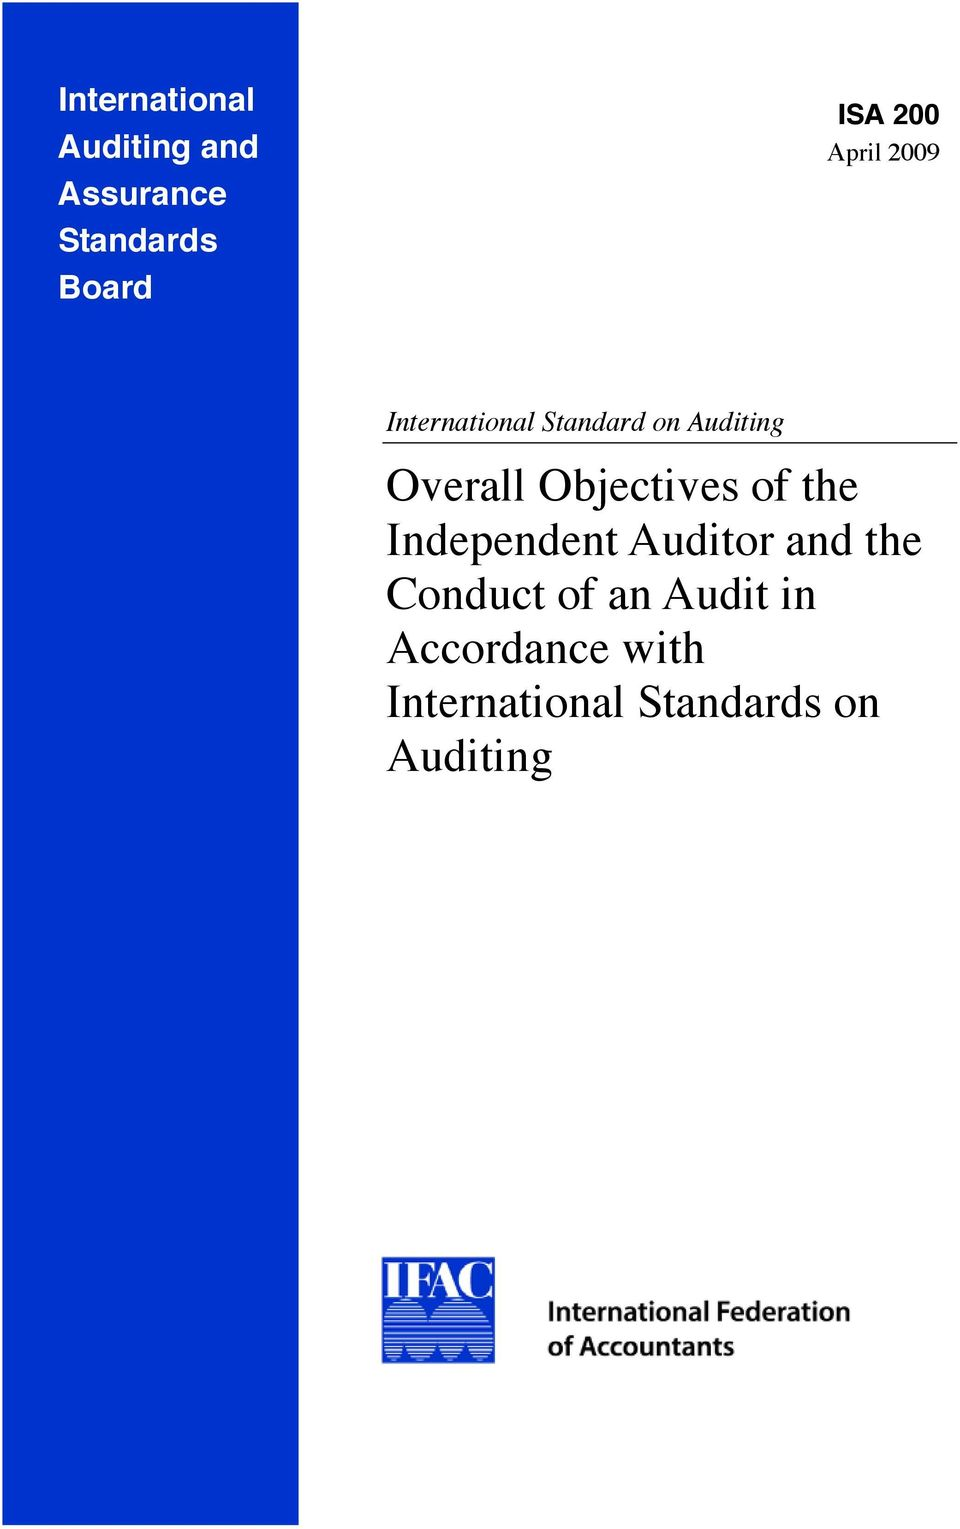 Objectives of the Independent Auditor and the Conduct of